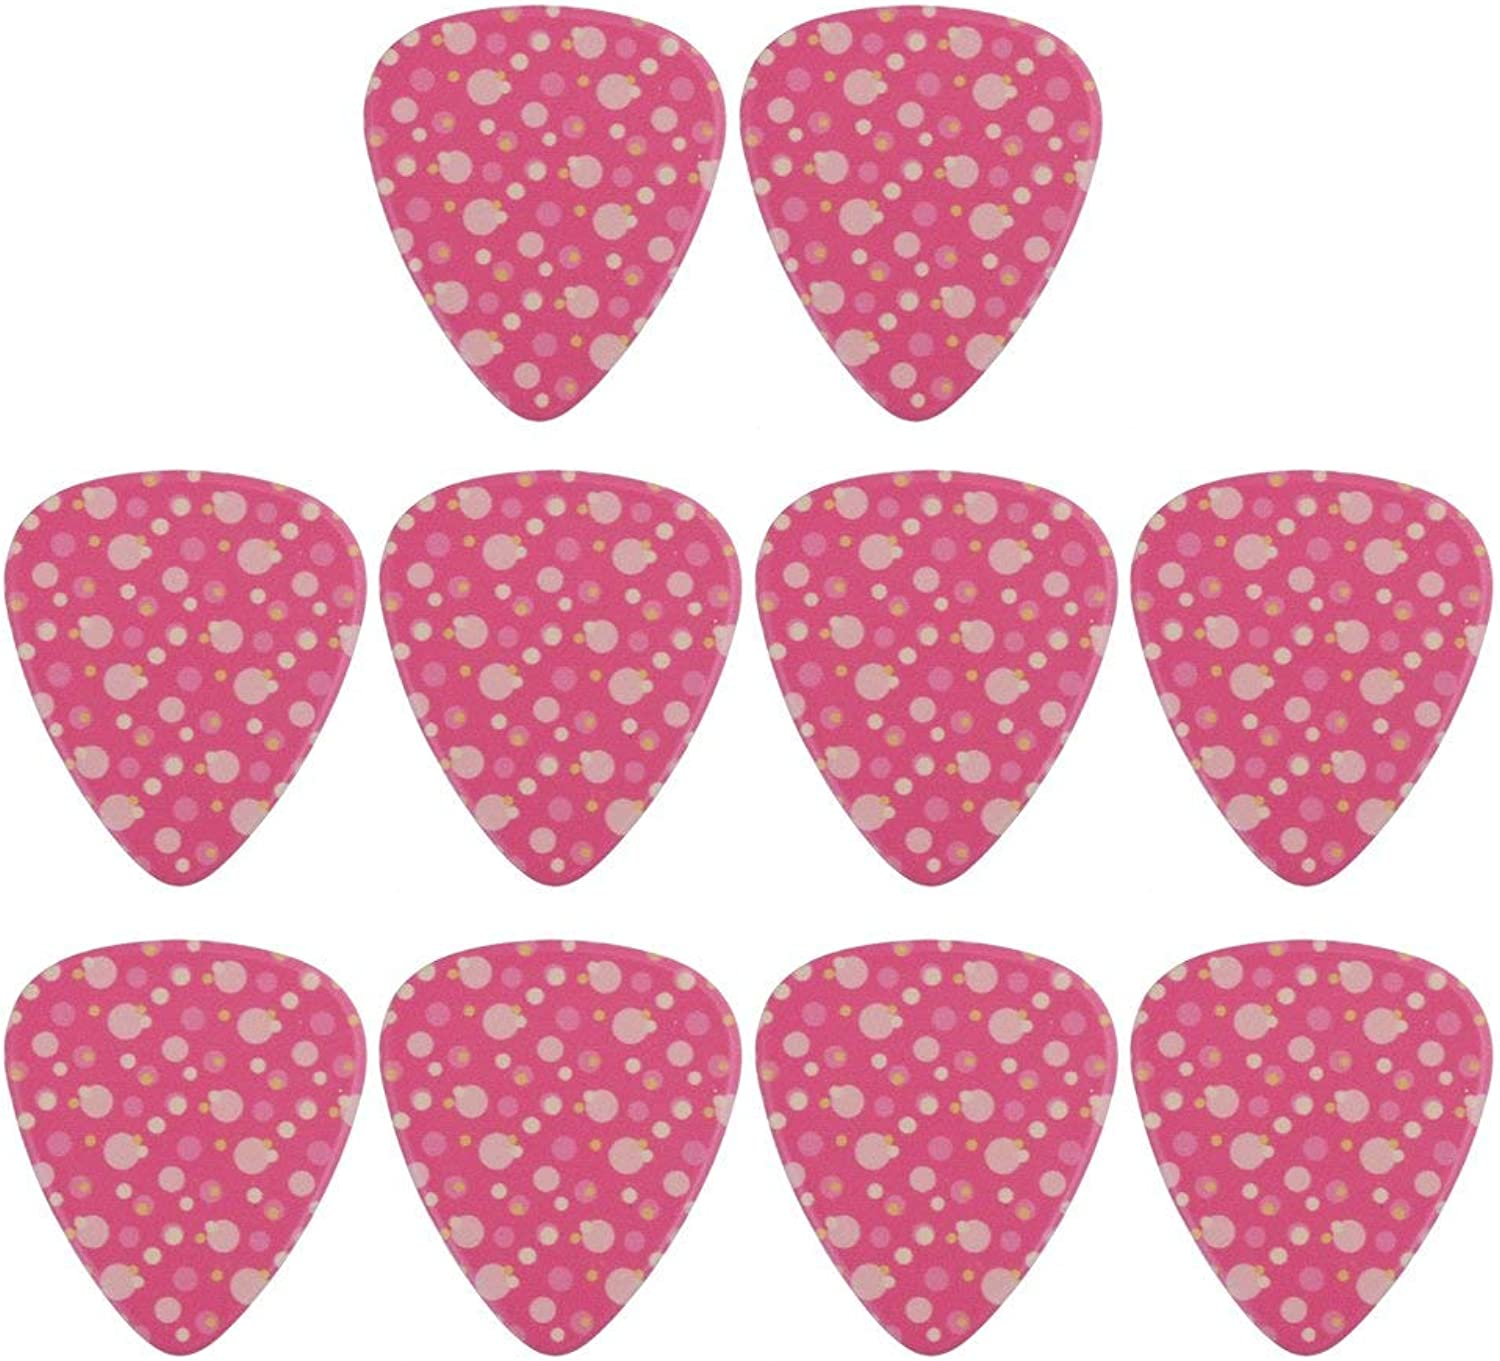 Yibuy 0.96mm Thickness ABS Plastic Pink Tiny Spots Pattern Electric Guitar Picks Pack of 10